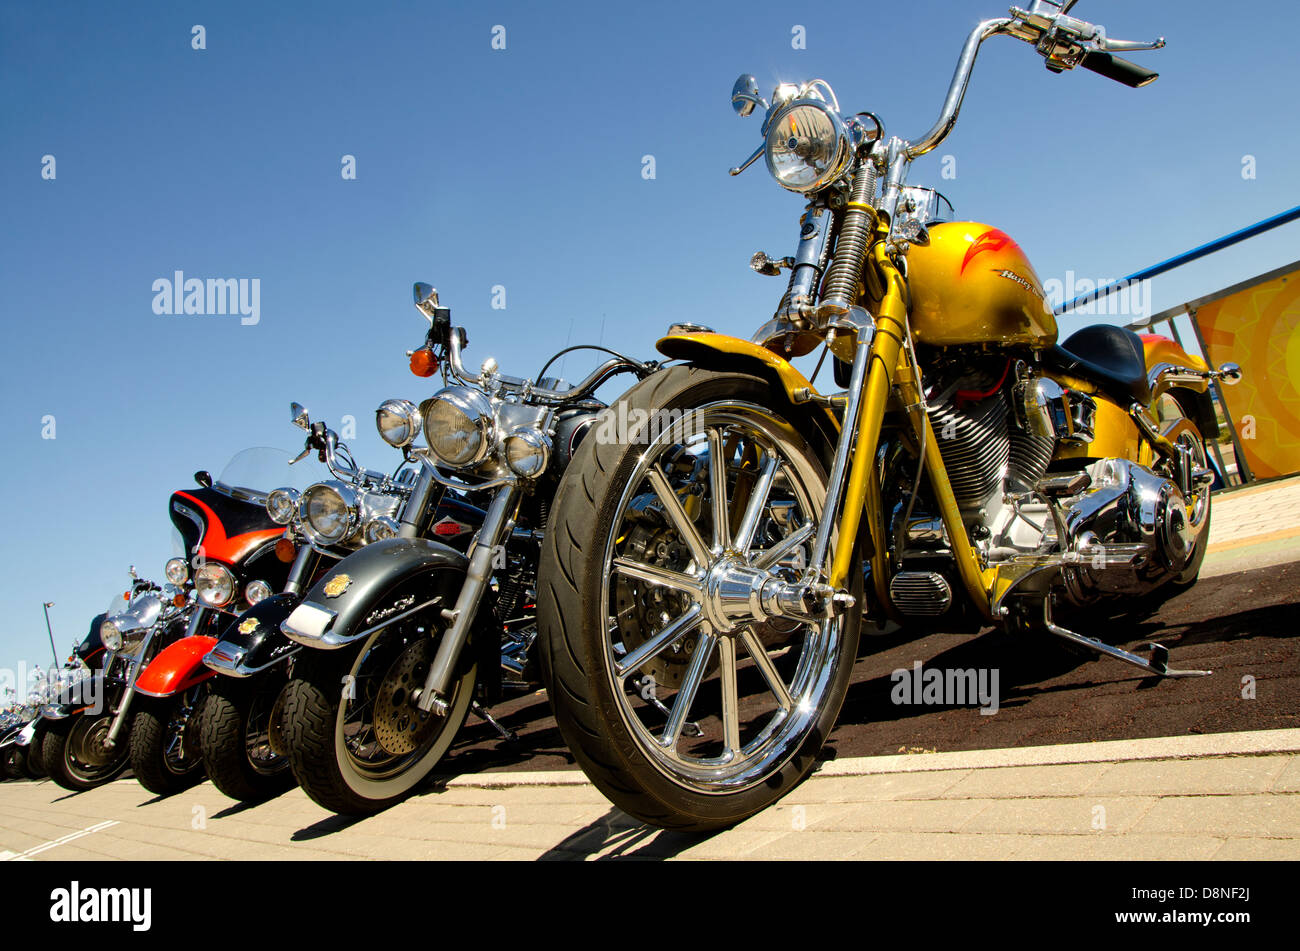 Harley Davidson Stock: Bikers Harley Davidson Stock Photos & Bikers Harley